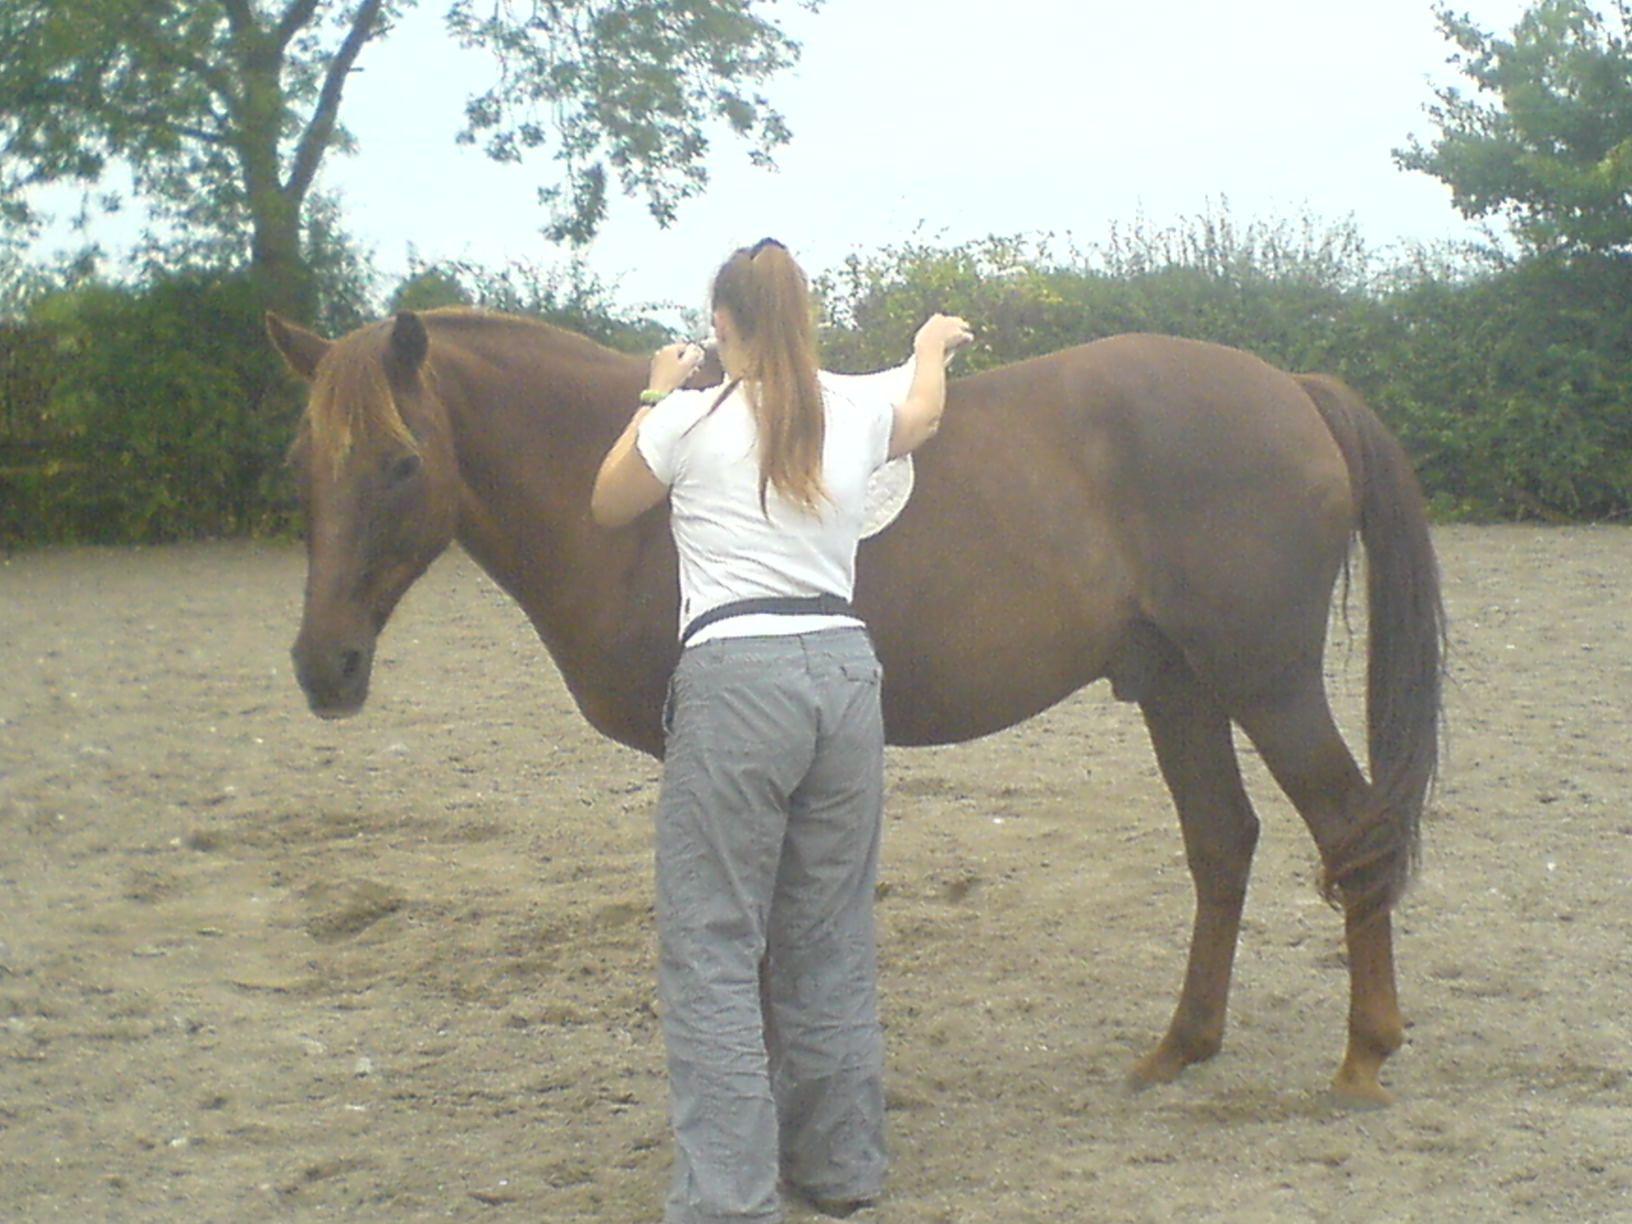 Rusty and me by Fiona 023